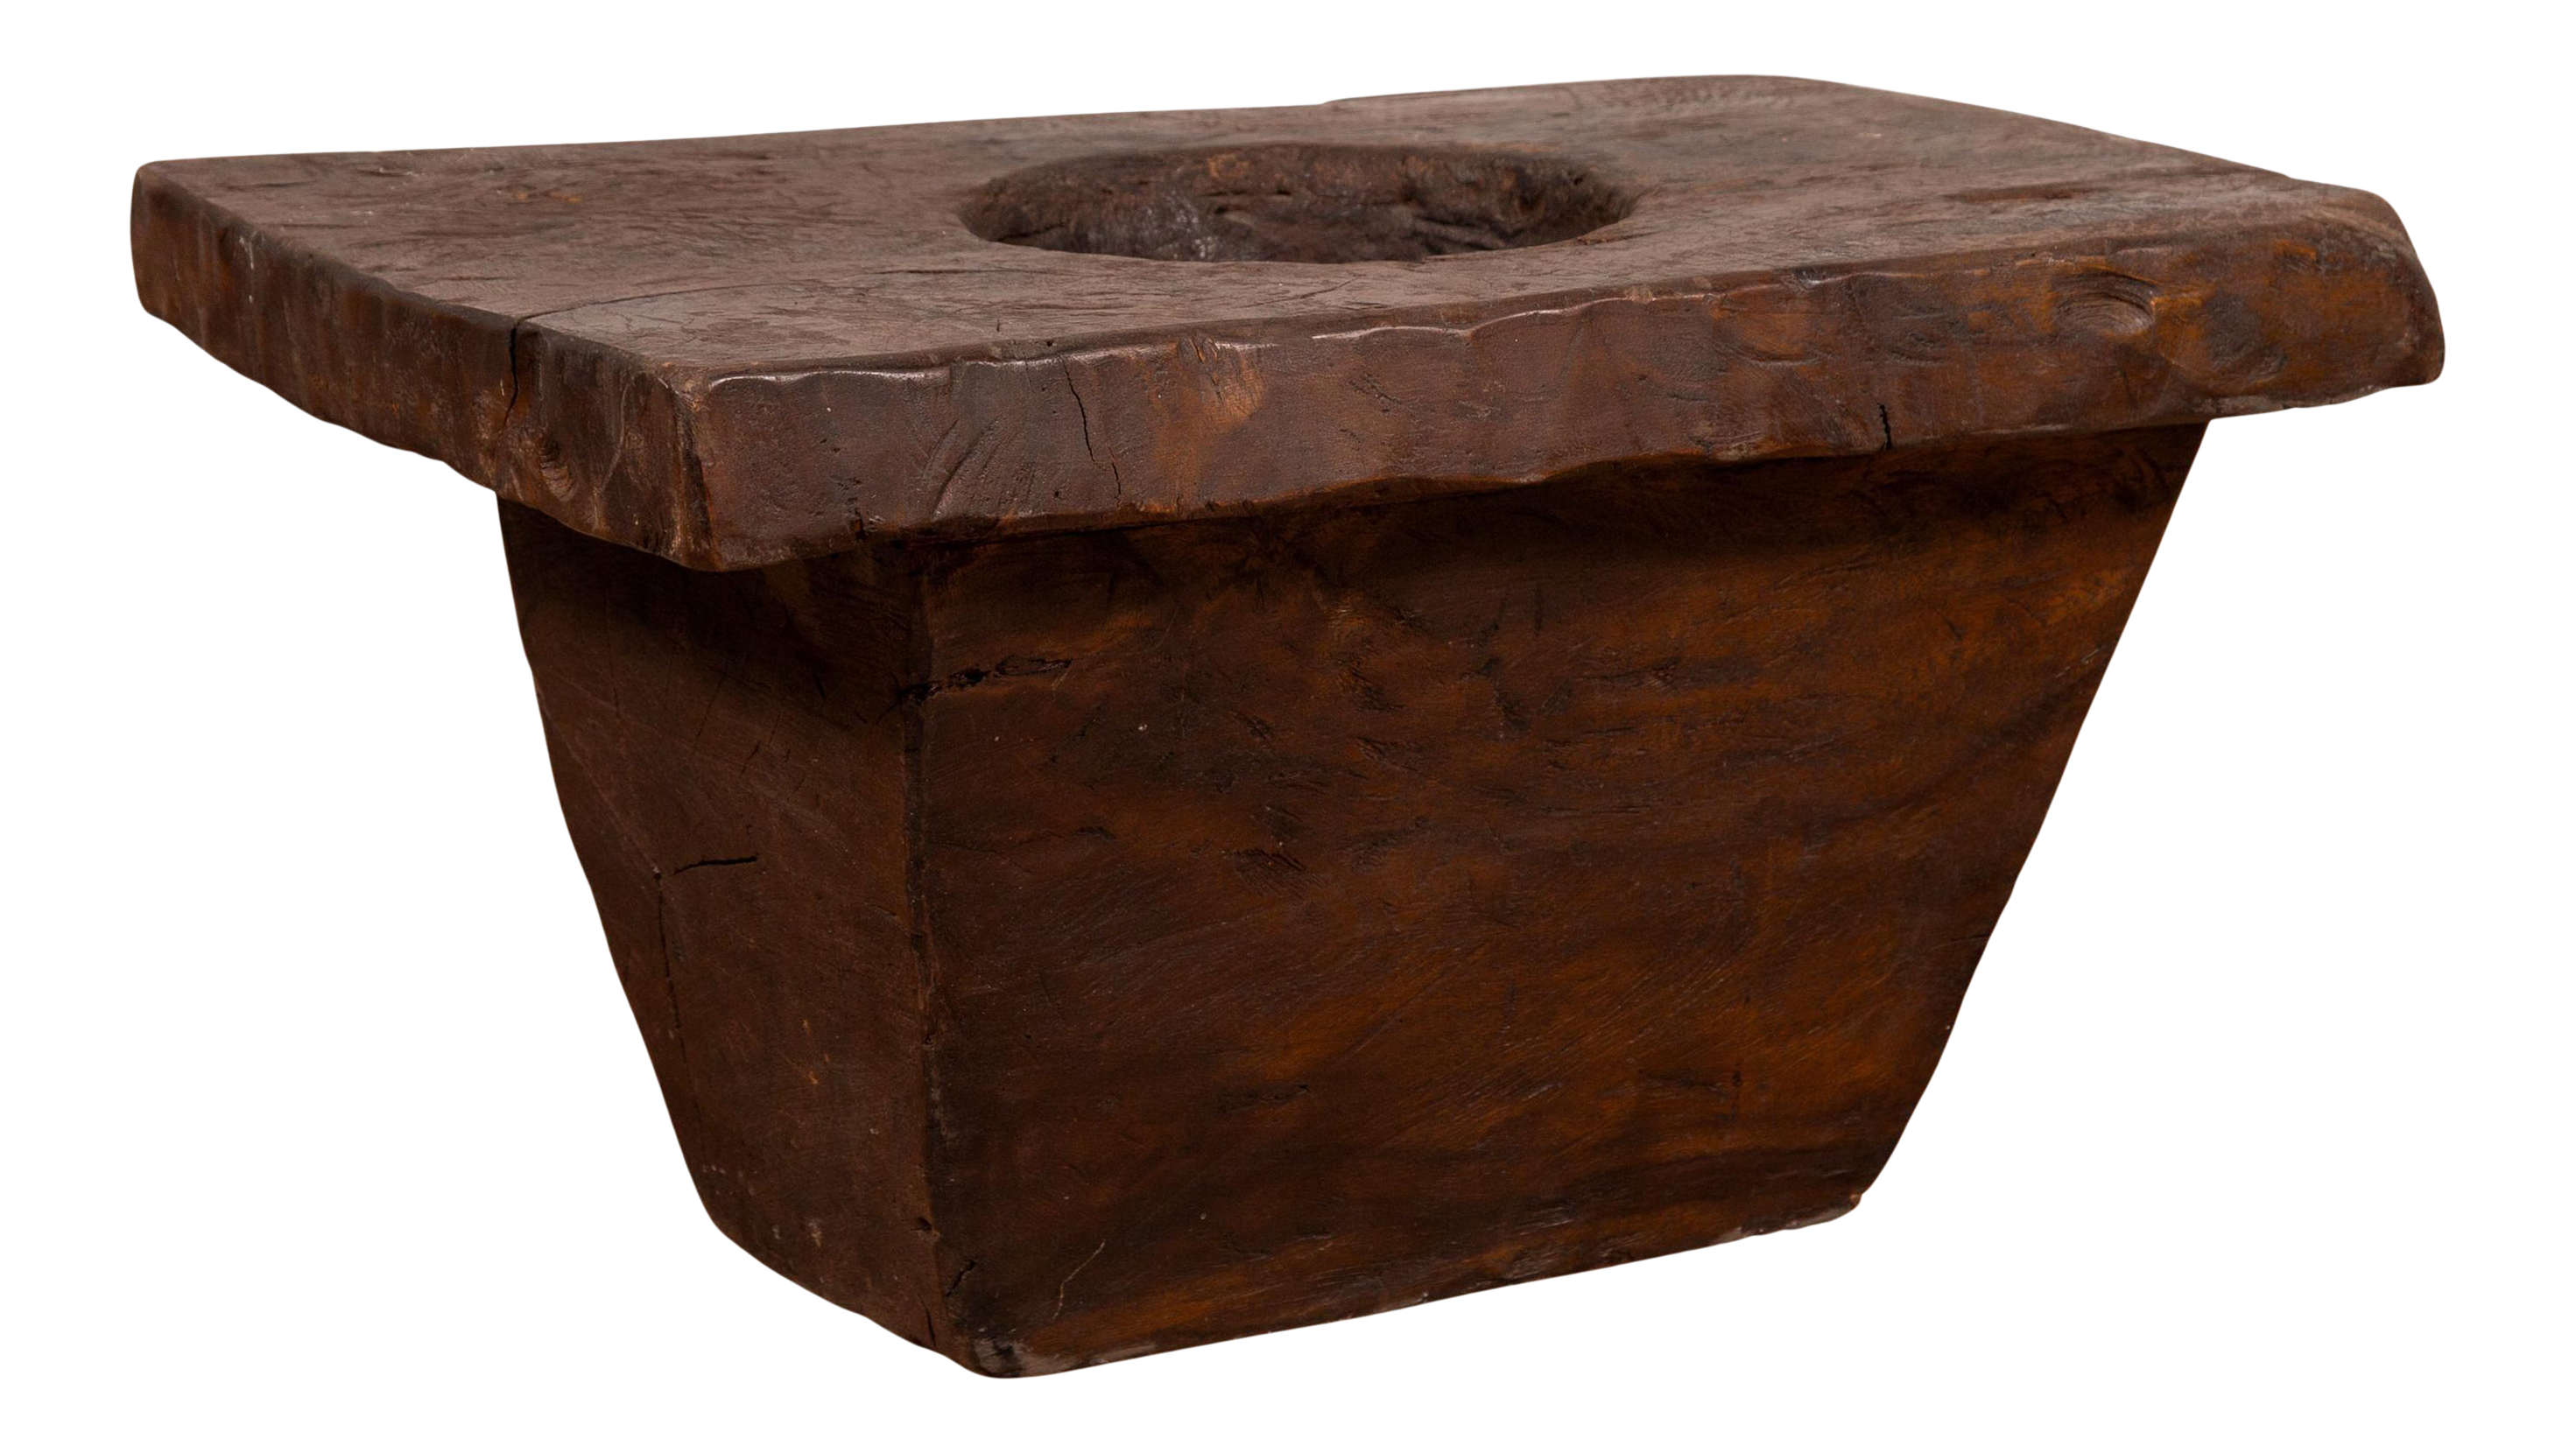 Rustic Antique Indonesian Brown Wooden Planter From The Early 20th Century Chairish